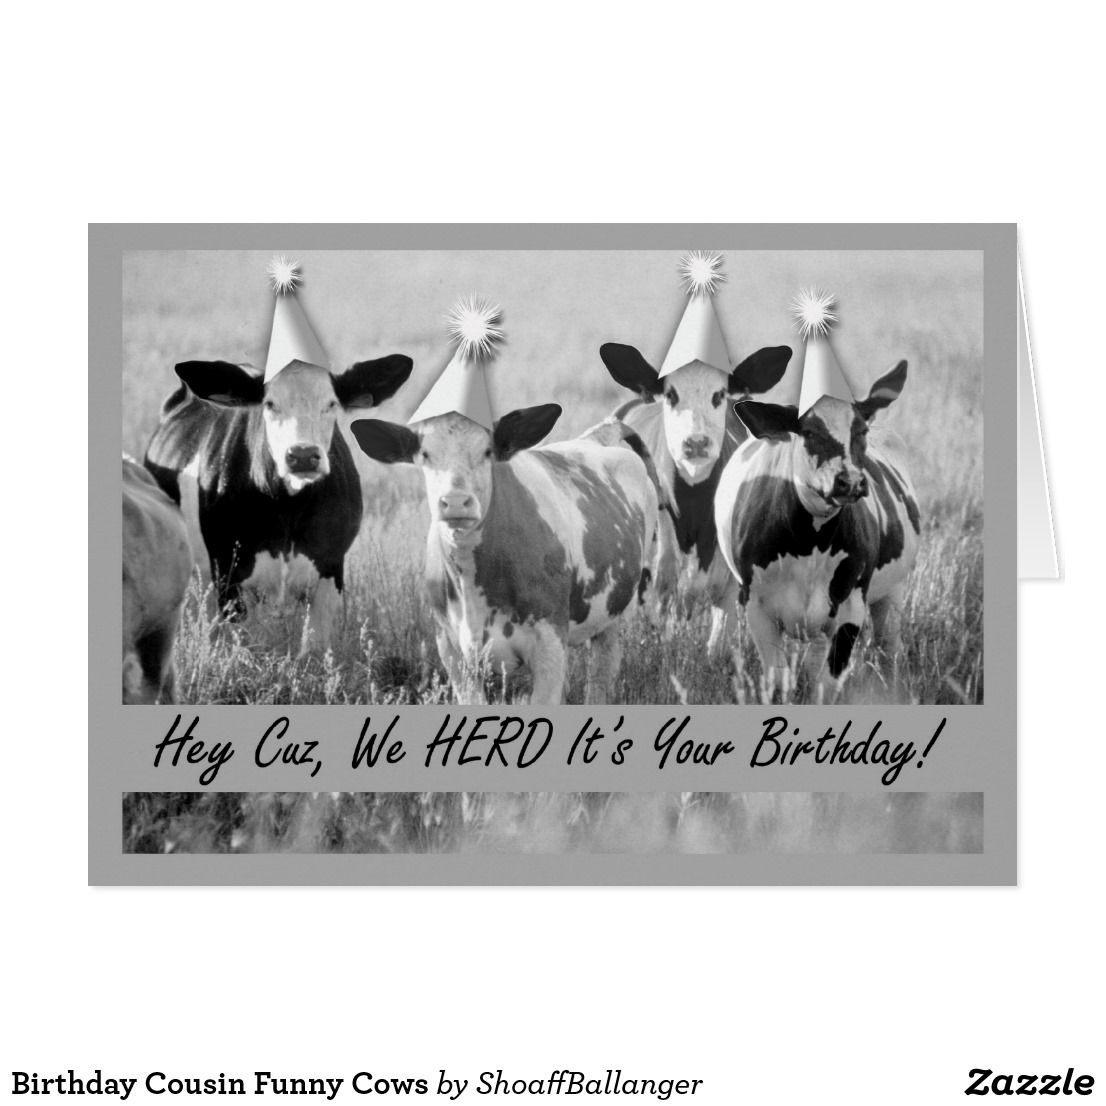 Birthday Cousin Funny Cows Card Funny Greeting Cards Pinterest